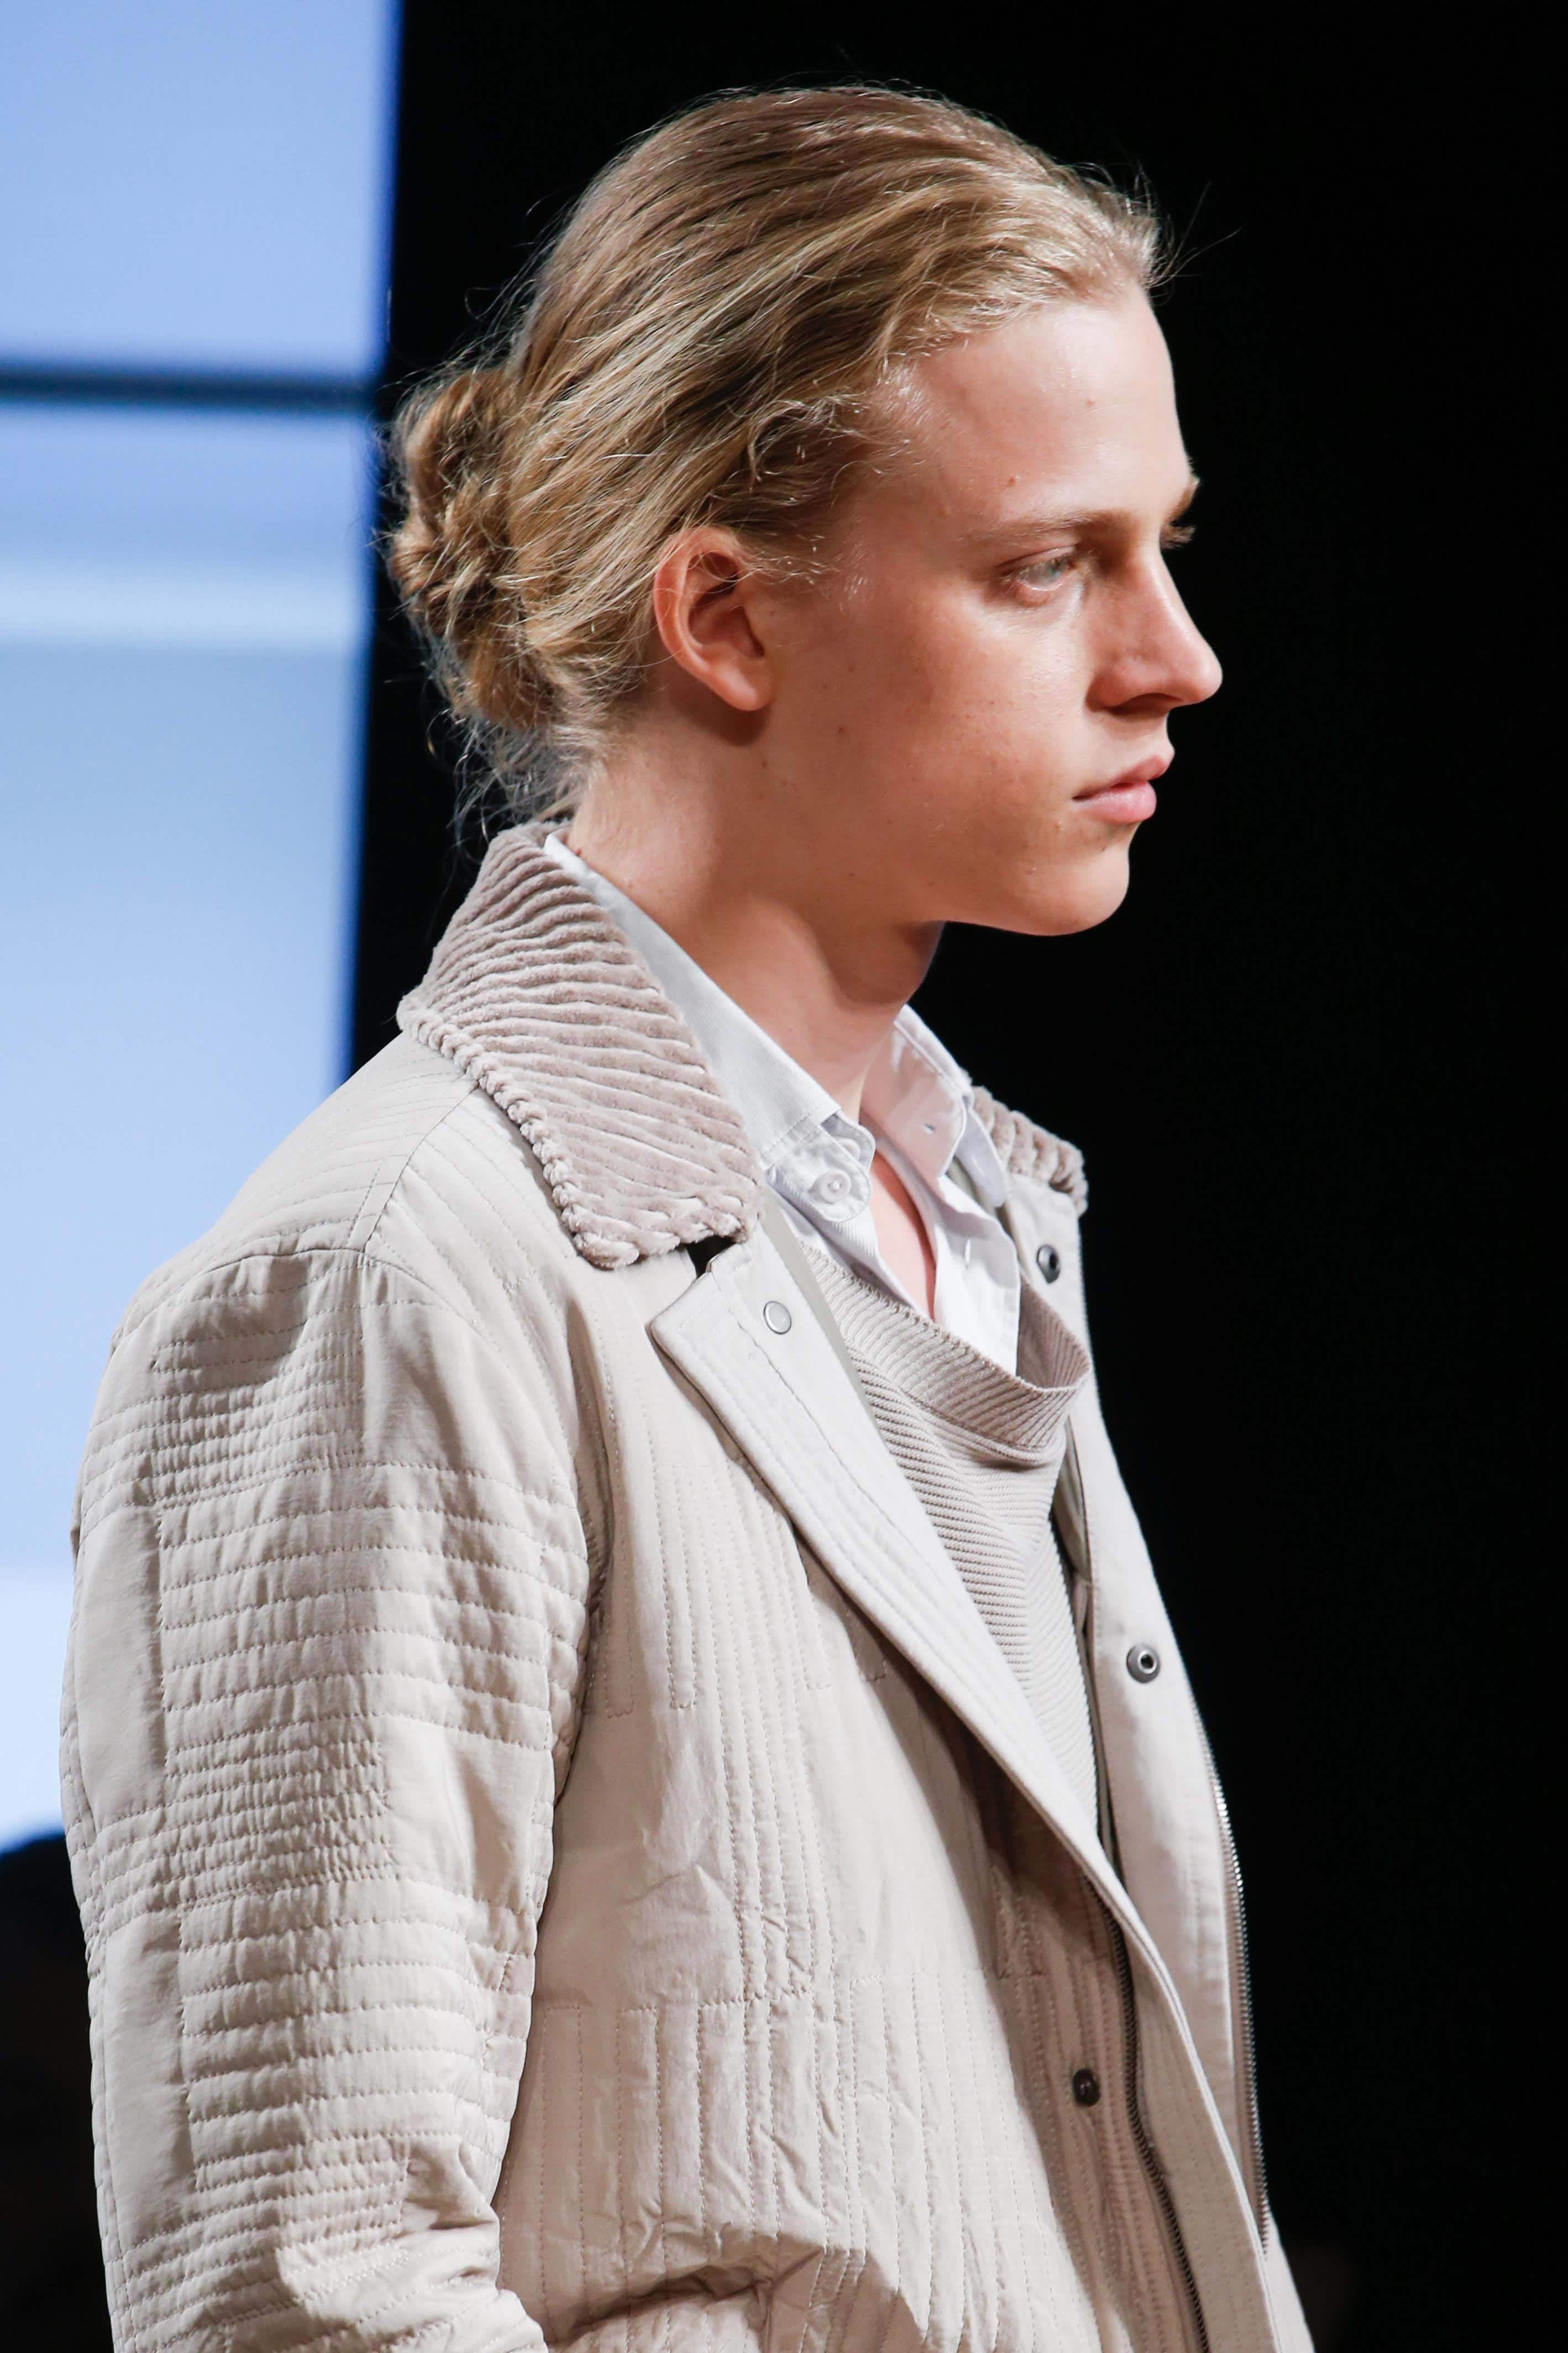 blonde male model on runway with messy low bun